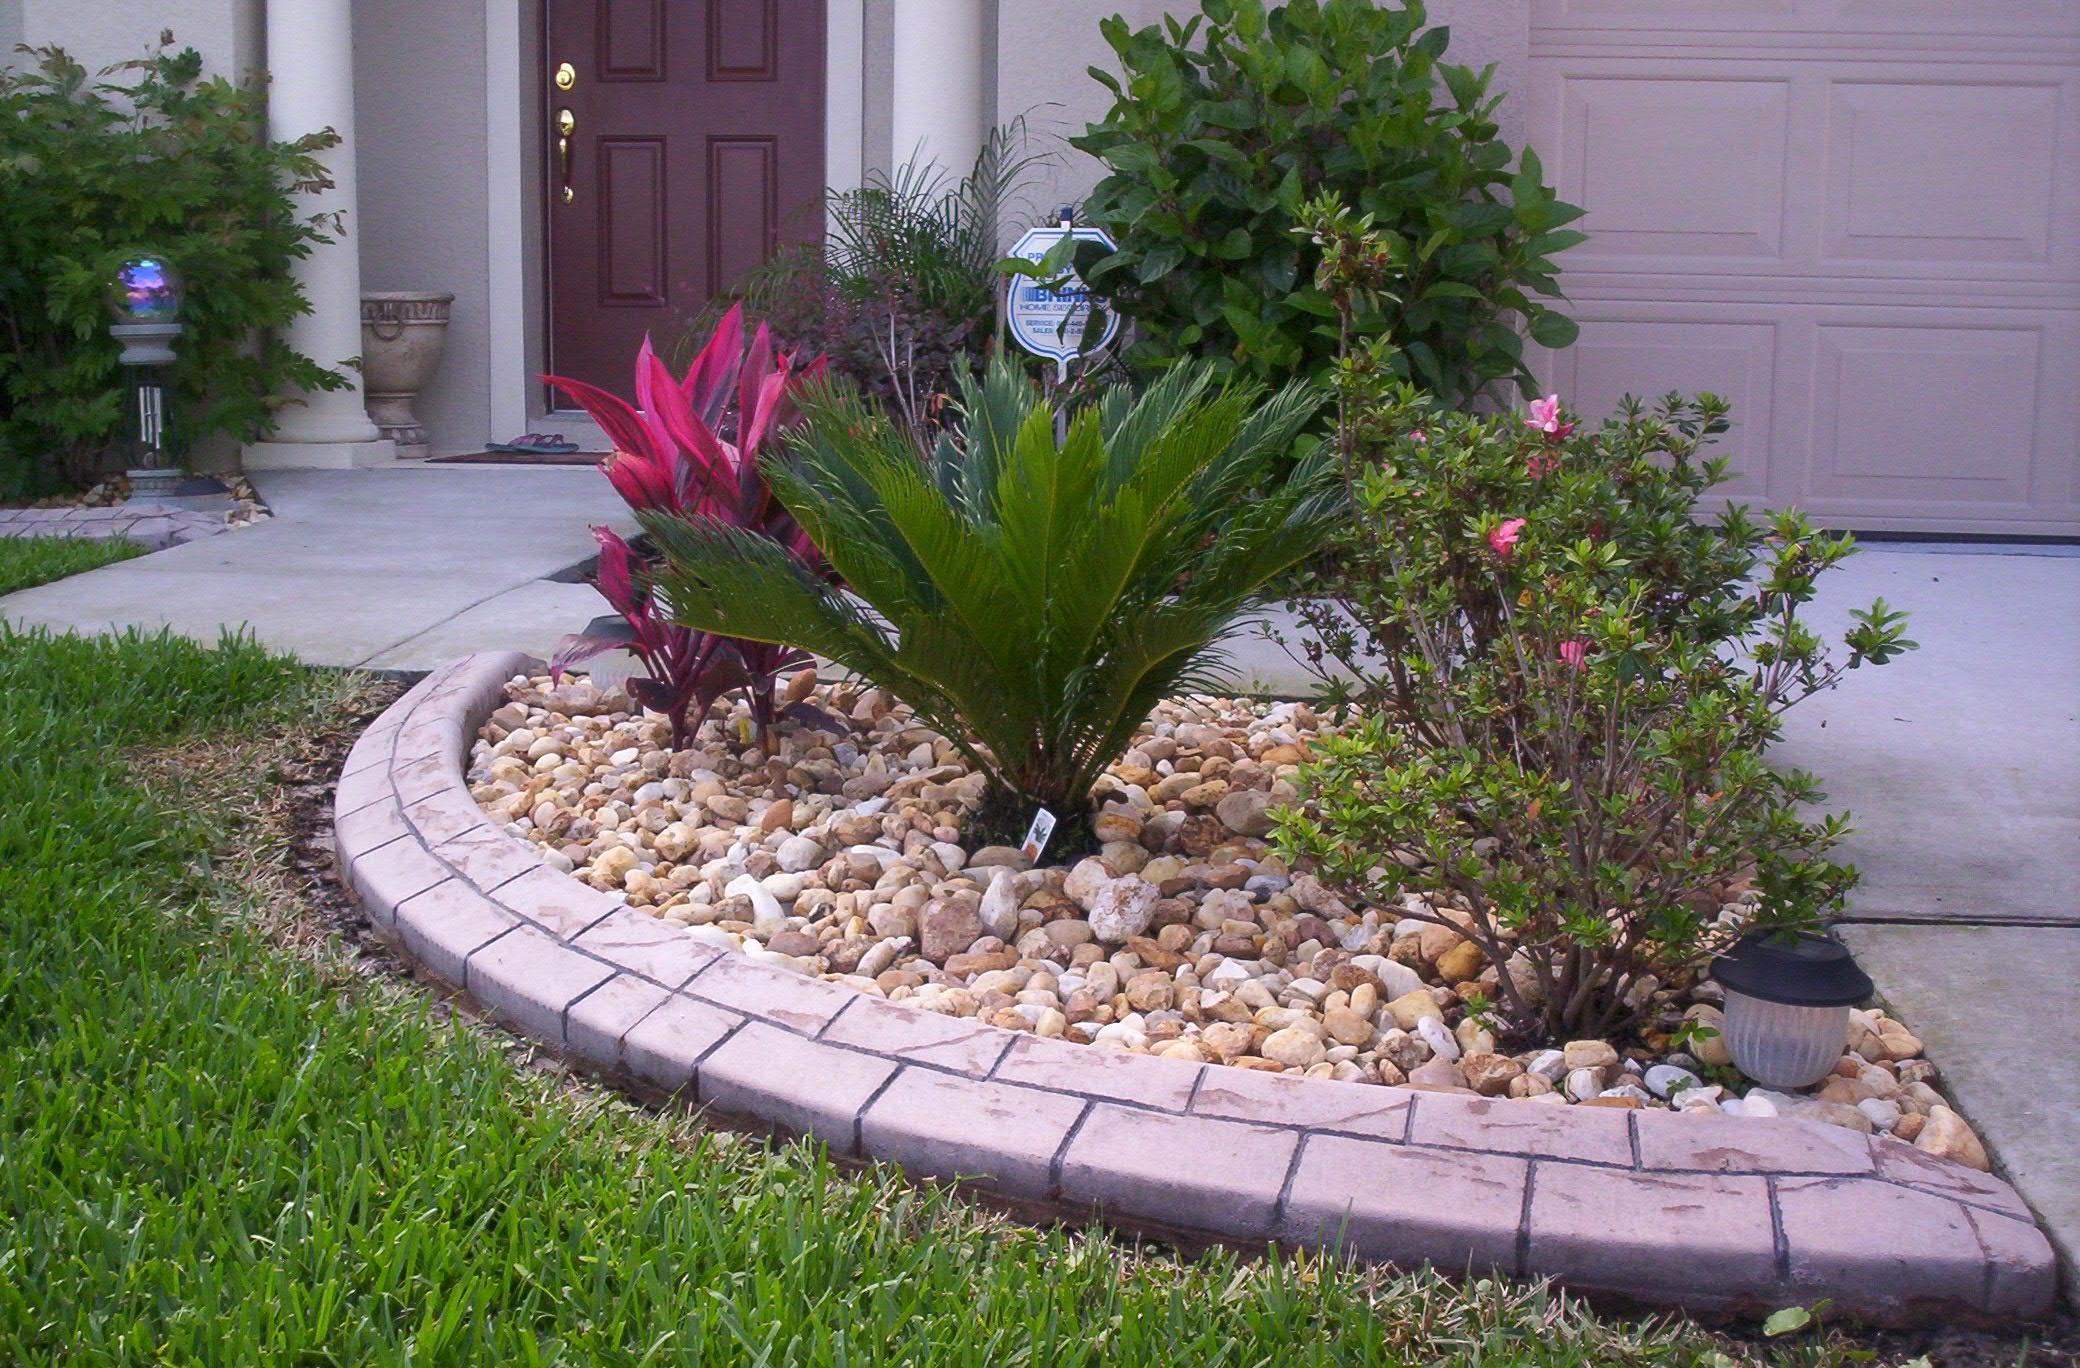 Home Depot Landscape Edging | Steel Edging Lowes | Metal Landscape Edging Home Depot